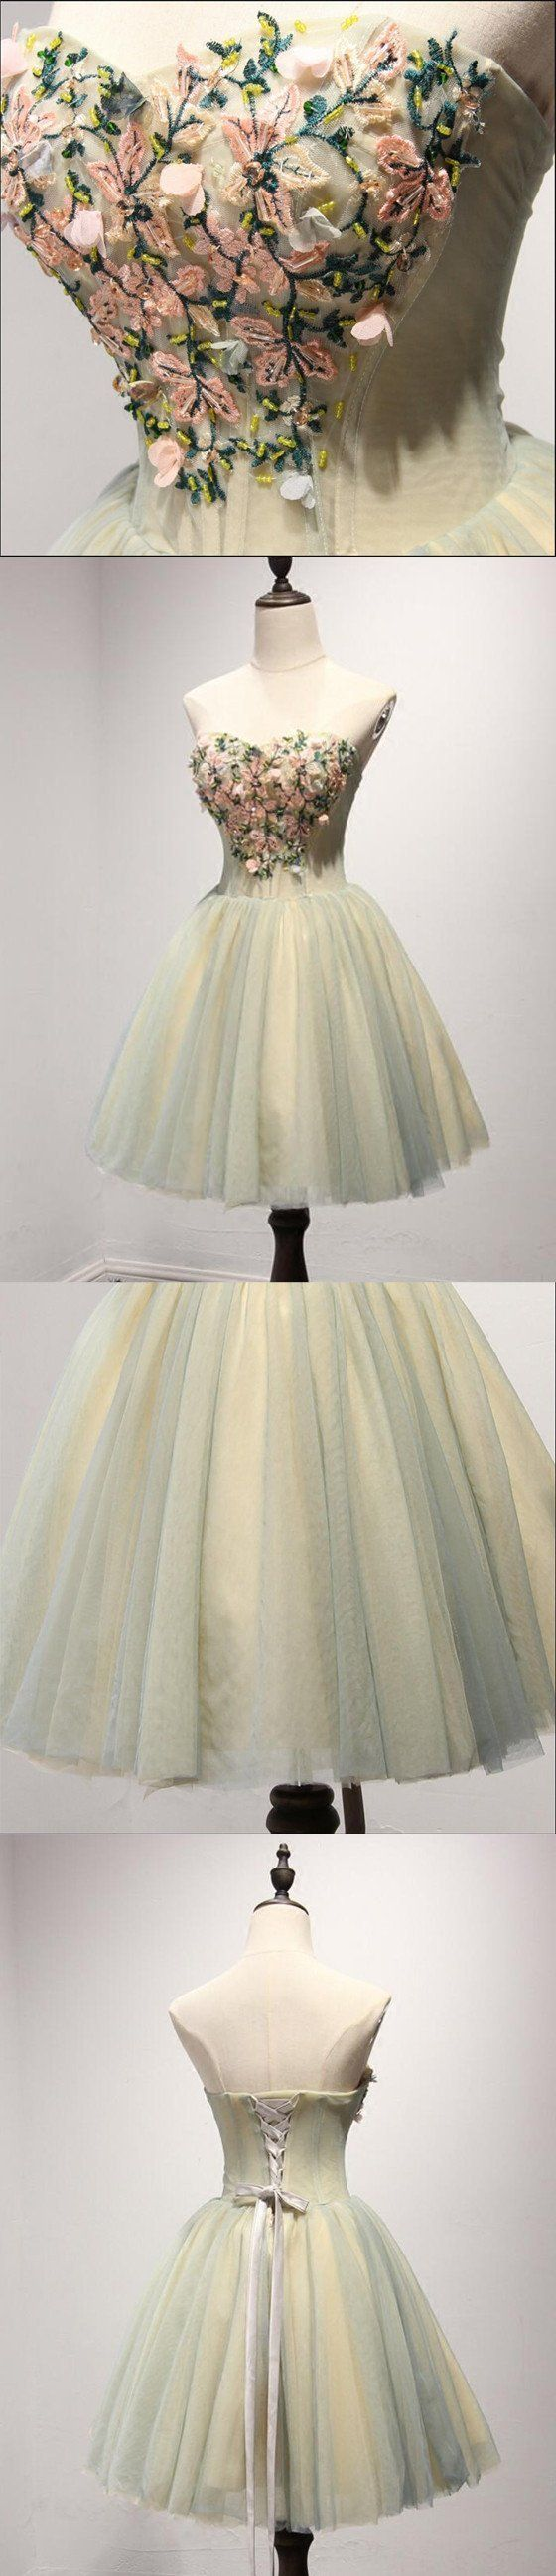 Unique yellow and green sweetheart homecoming prom dresses short